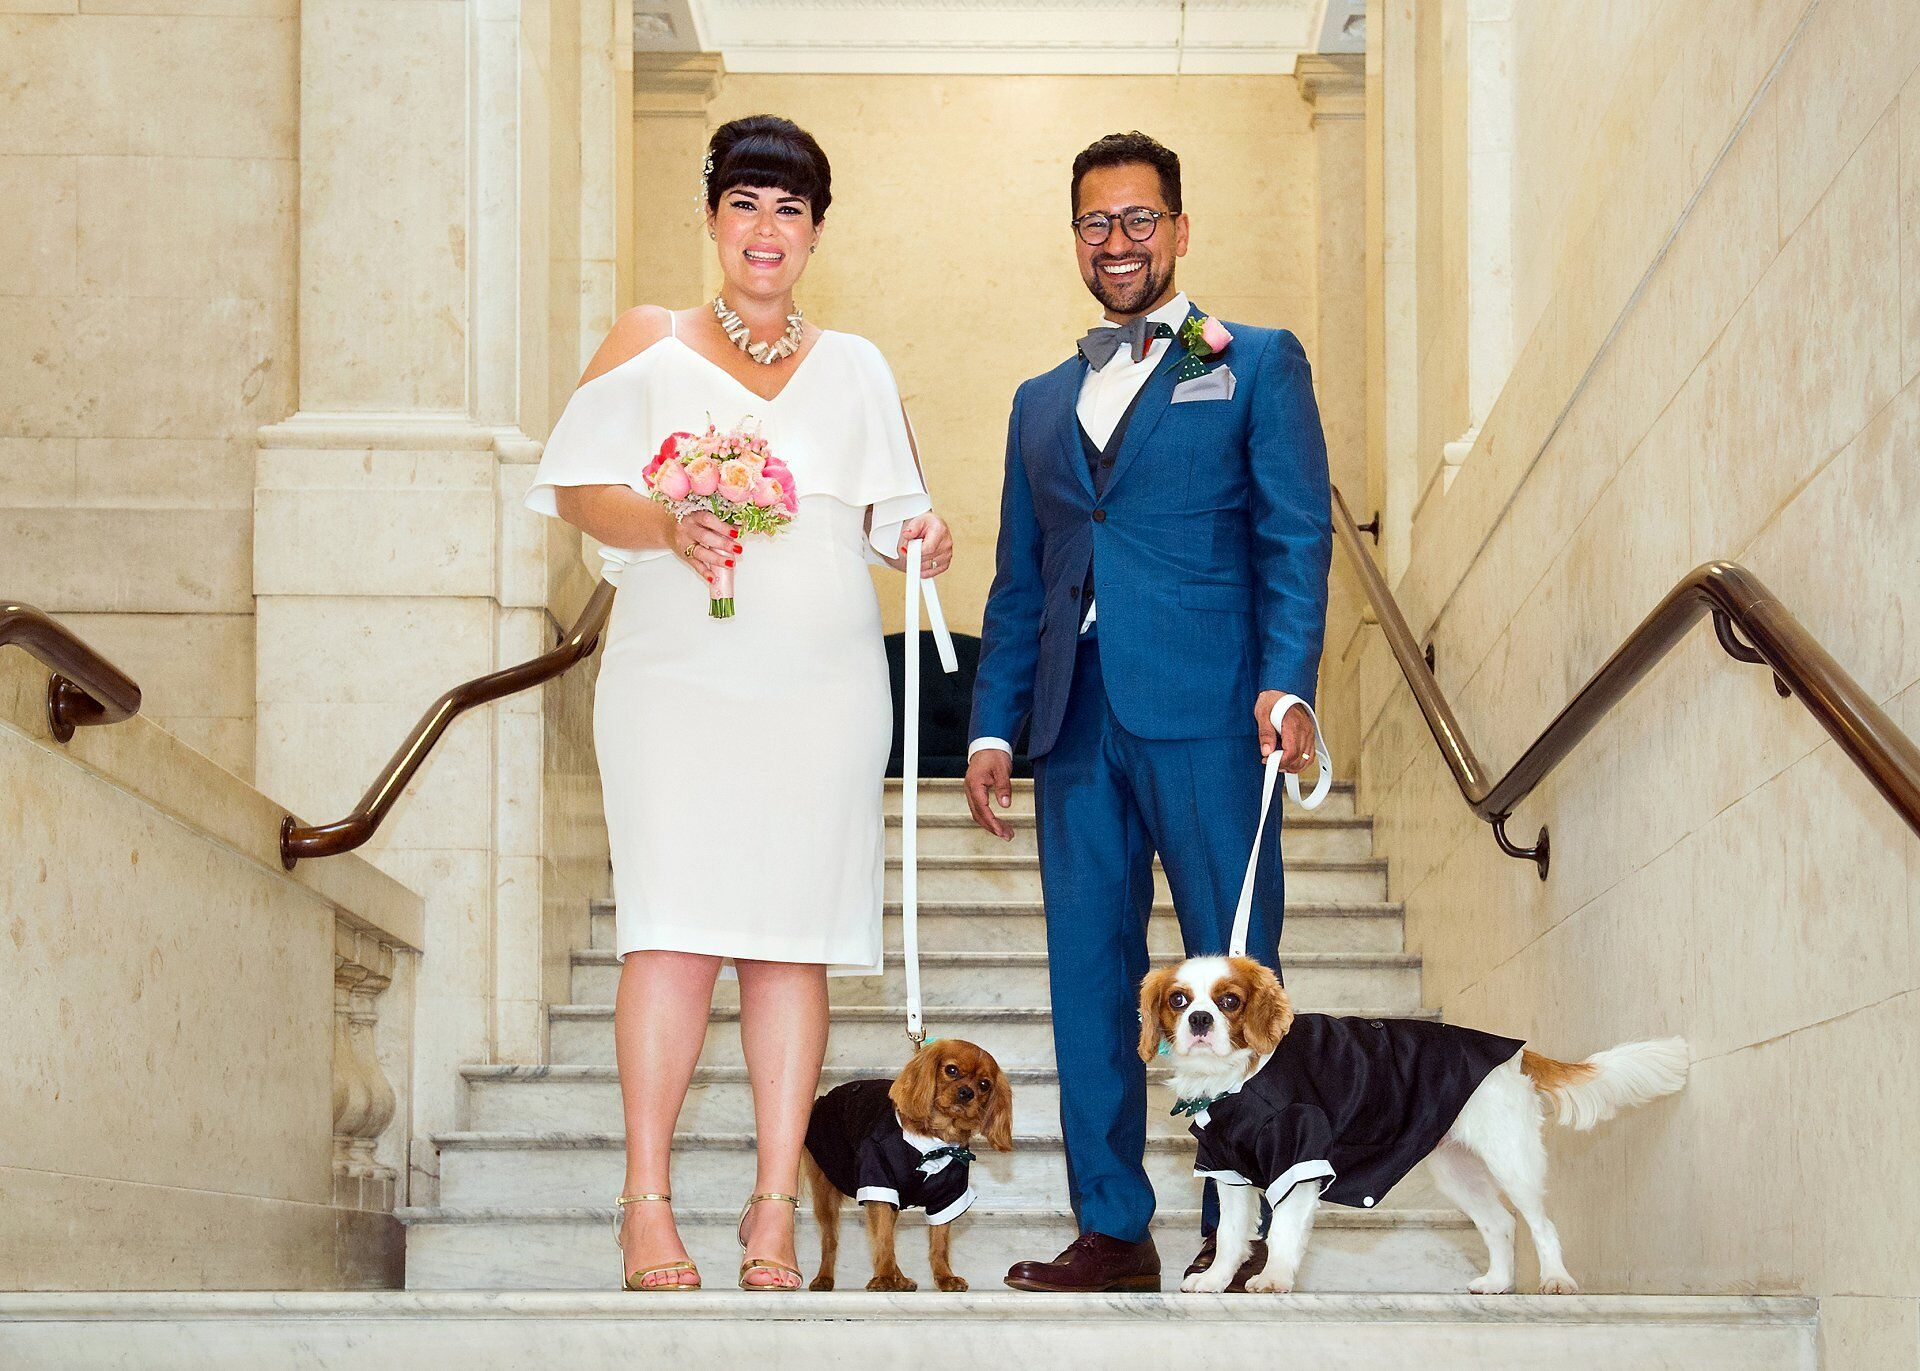 pet friendly wedding venue london (westminster register office) - old marylebone town hall here a bride and groom and their two puppies pose on the marble staircase